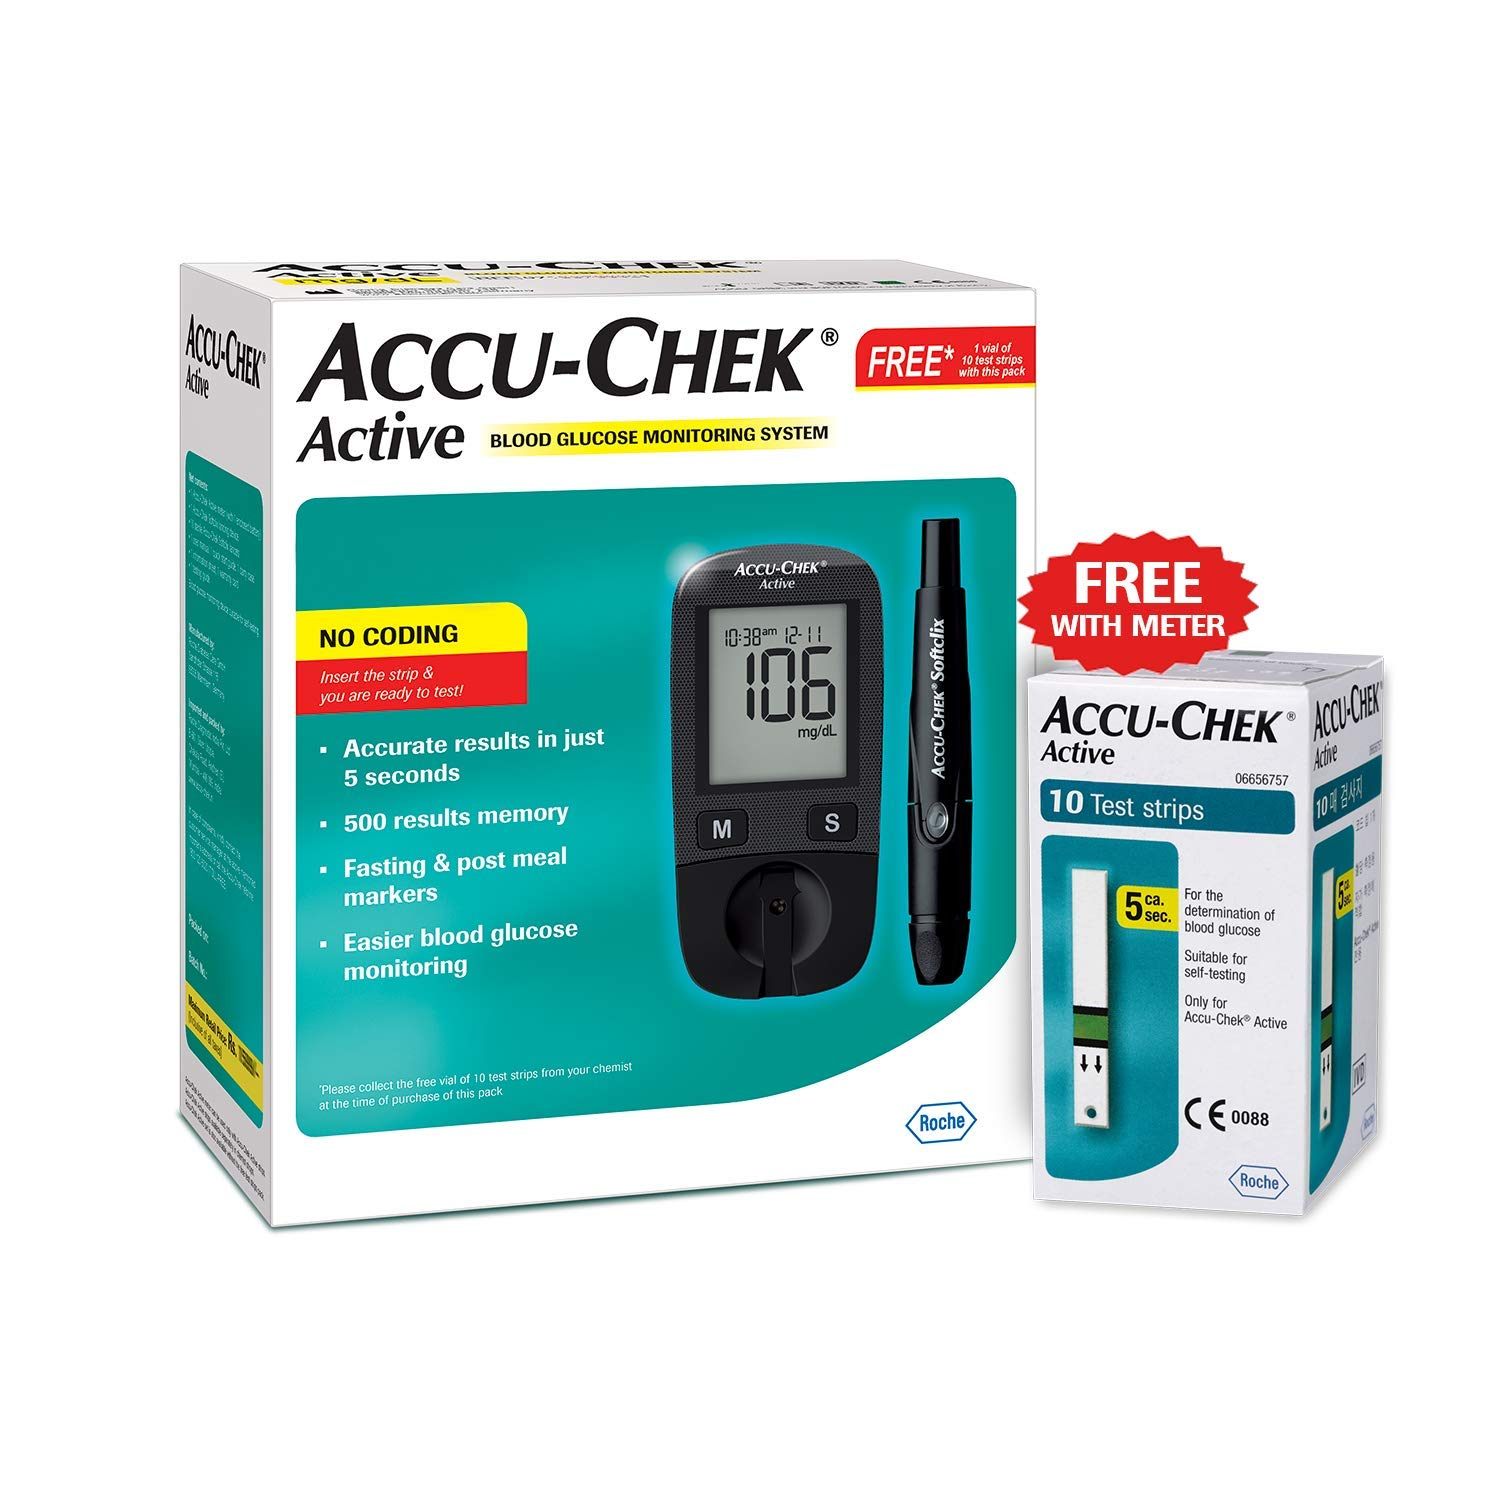 ACCUCHEK ACTIVE MACHINE